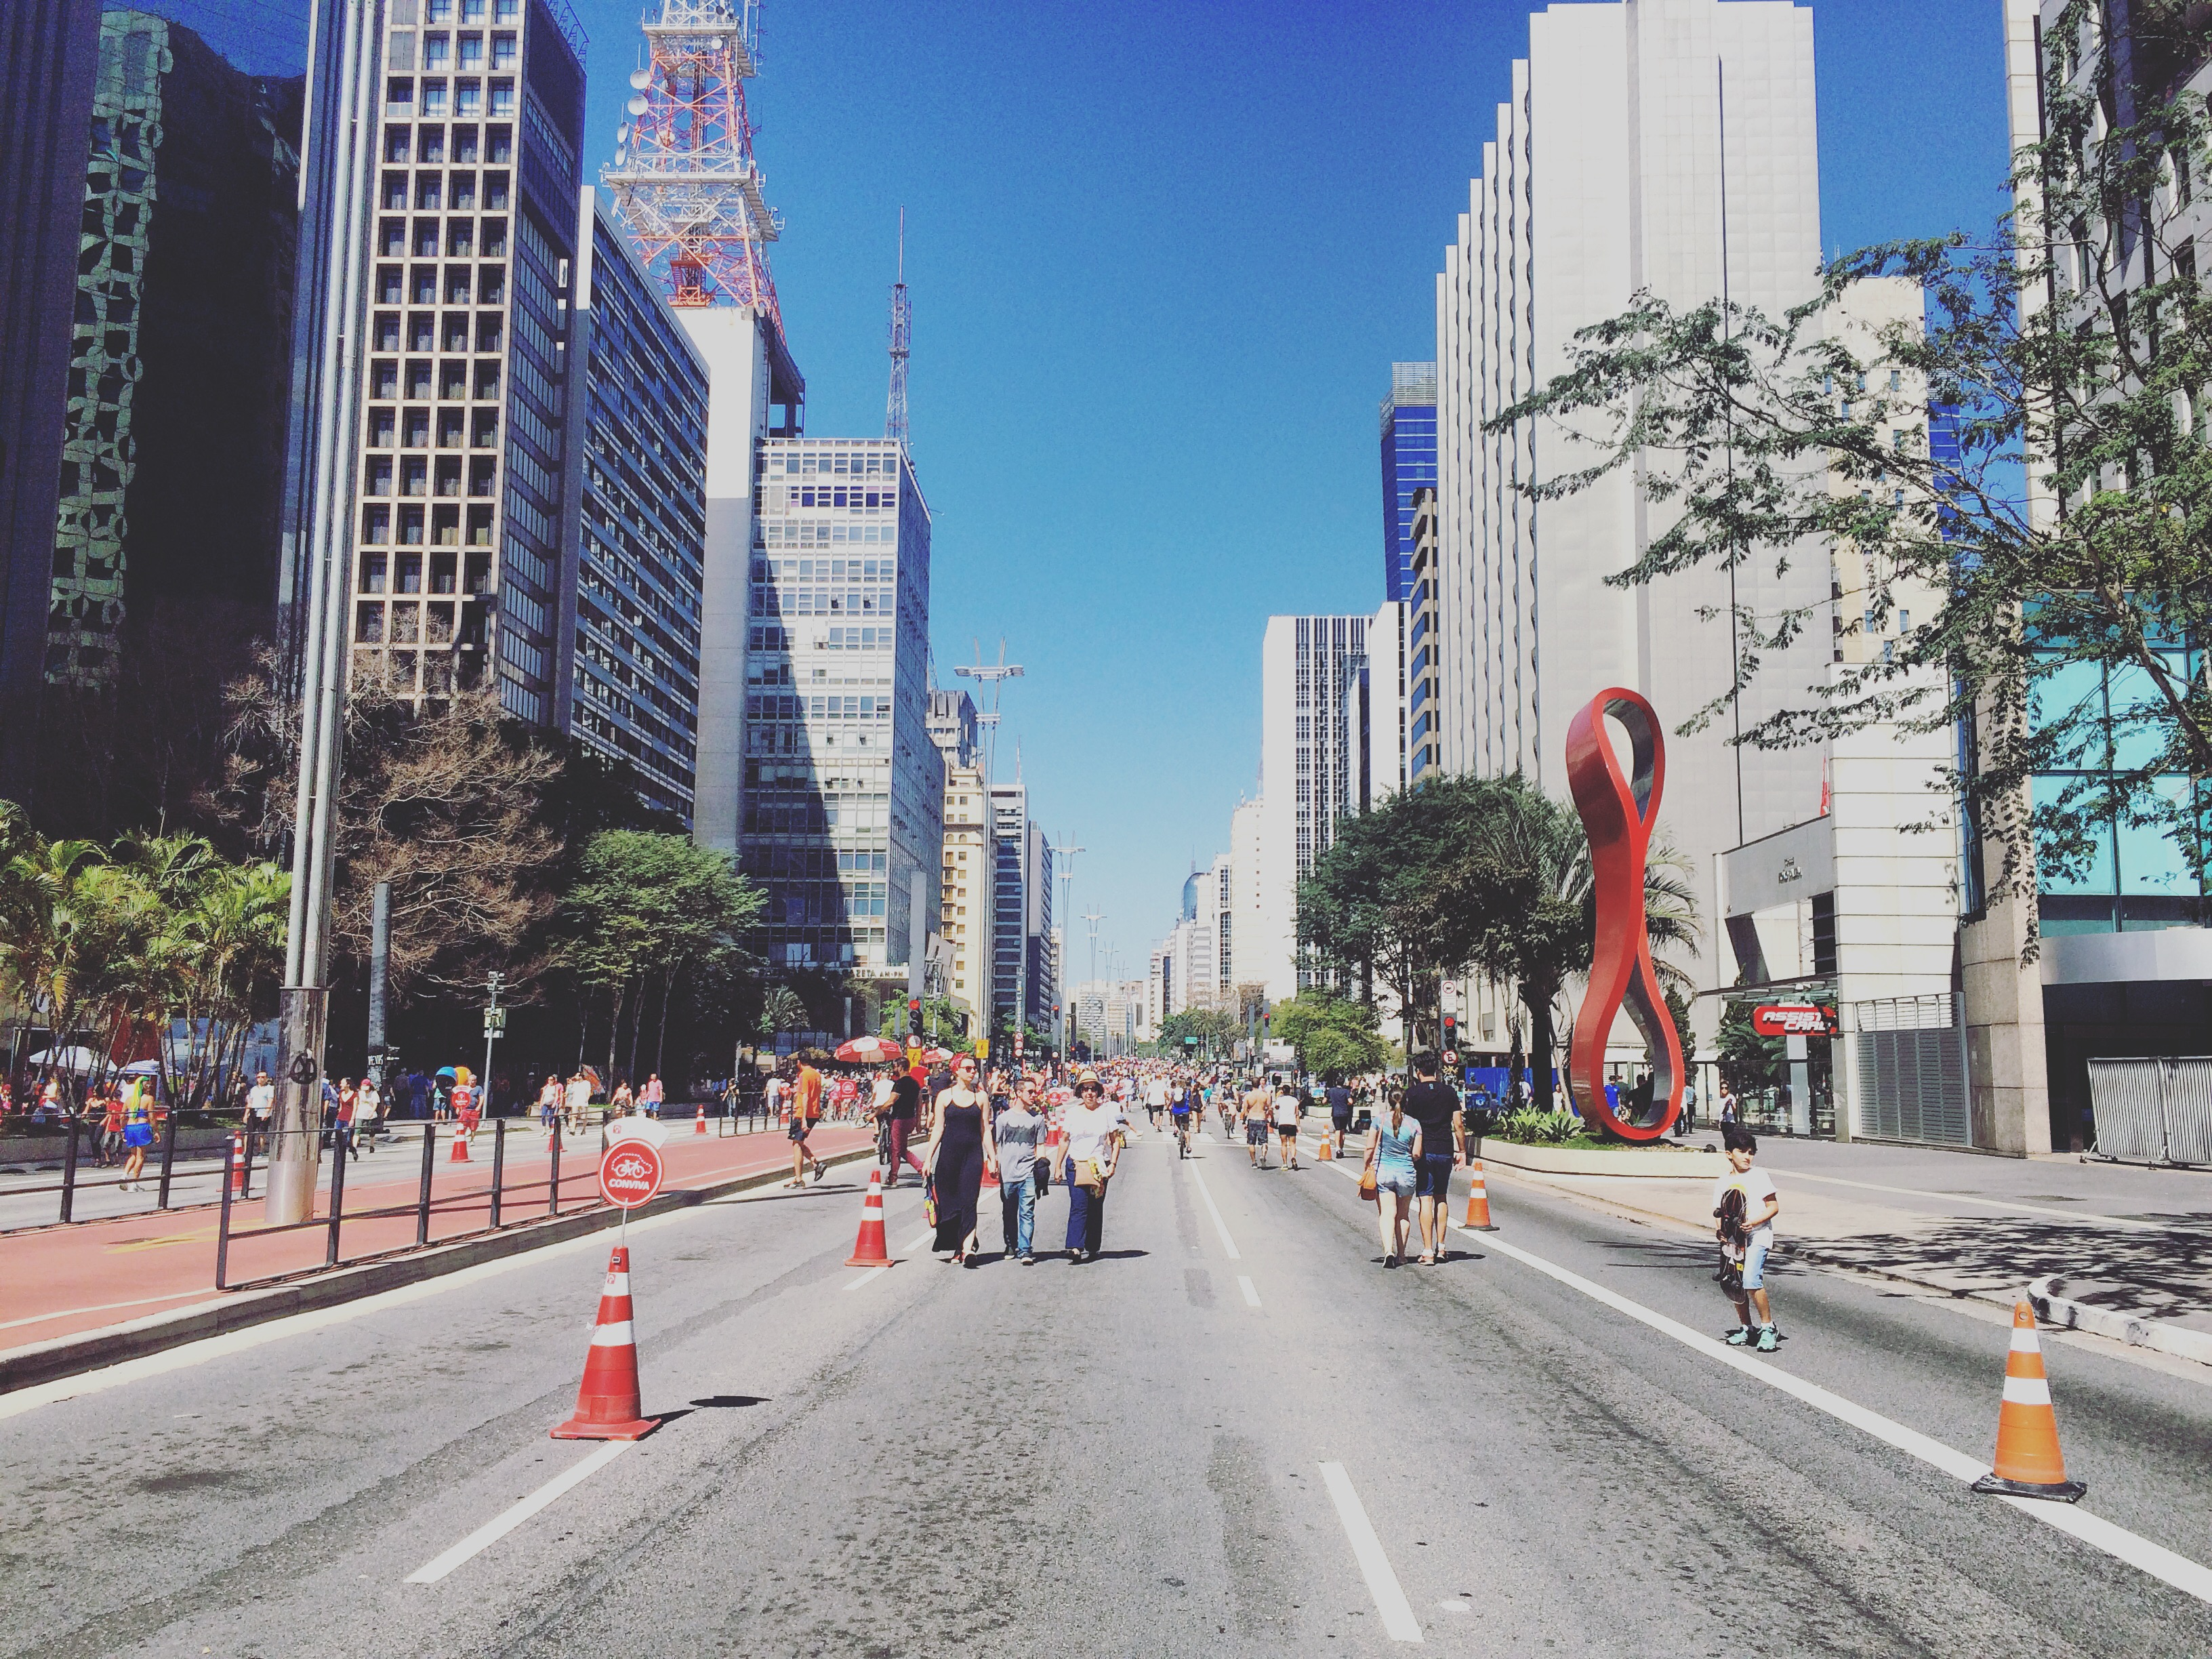 Paulista Avenue on Sundays - public open space